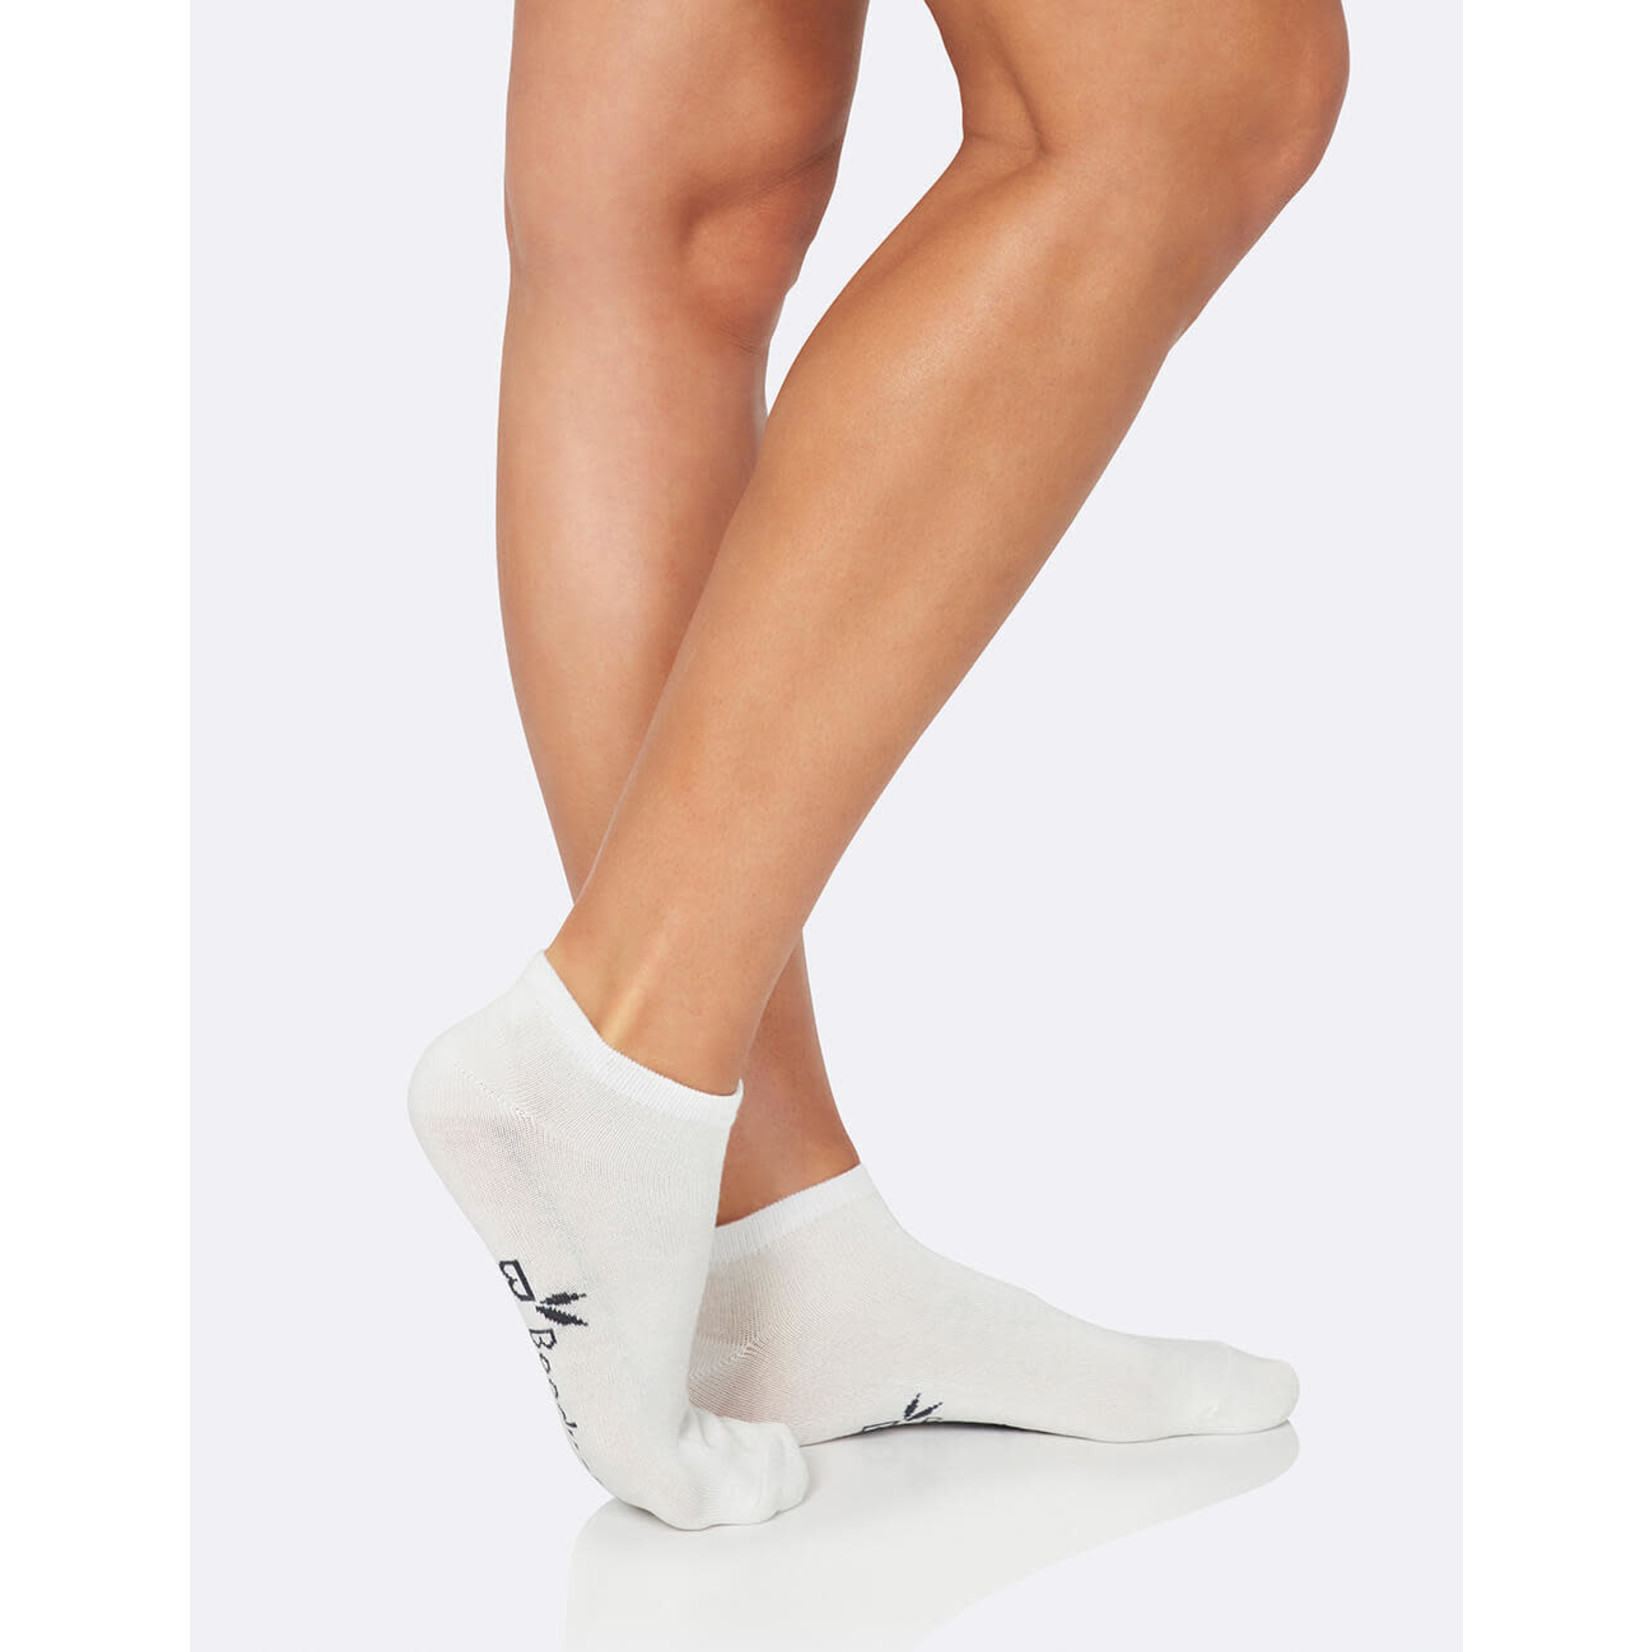 Boody Boody Women's Low Cut Sneaker Socks